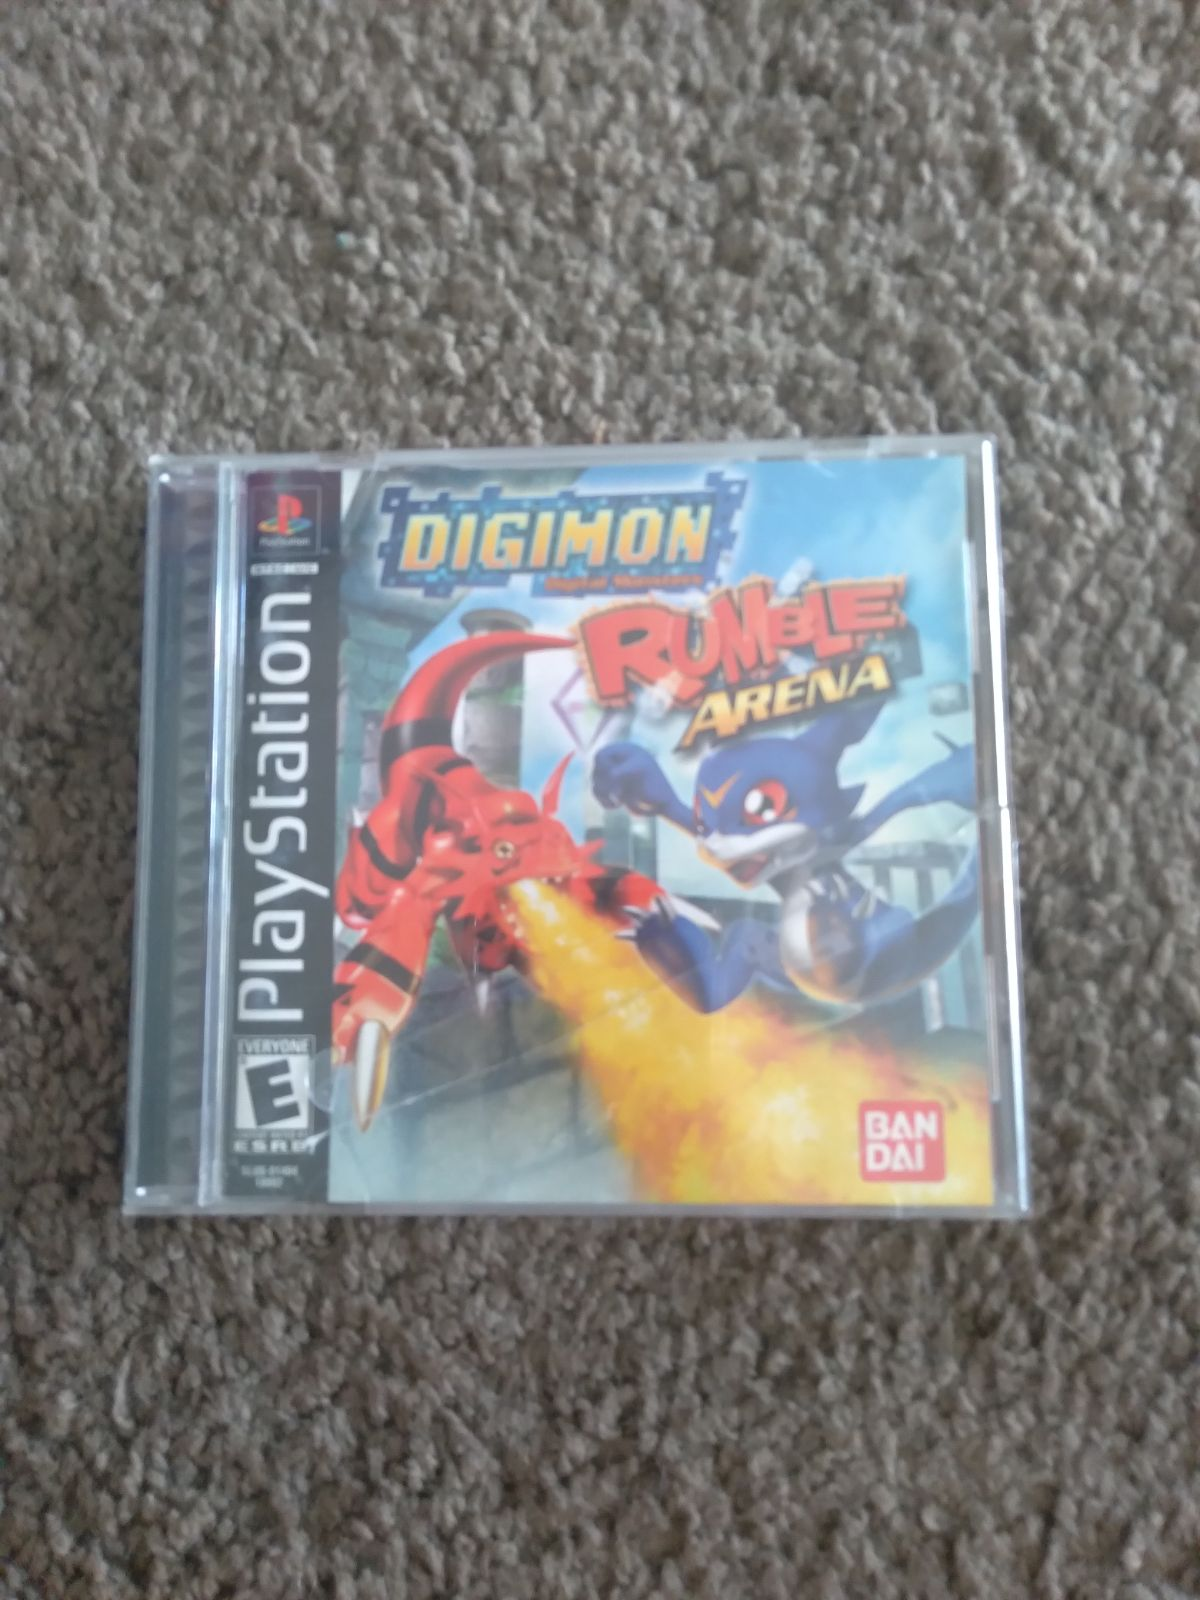 Digimon Rumble Arena on Playstation 1